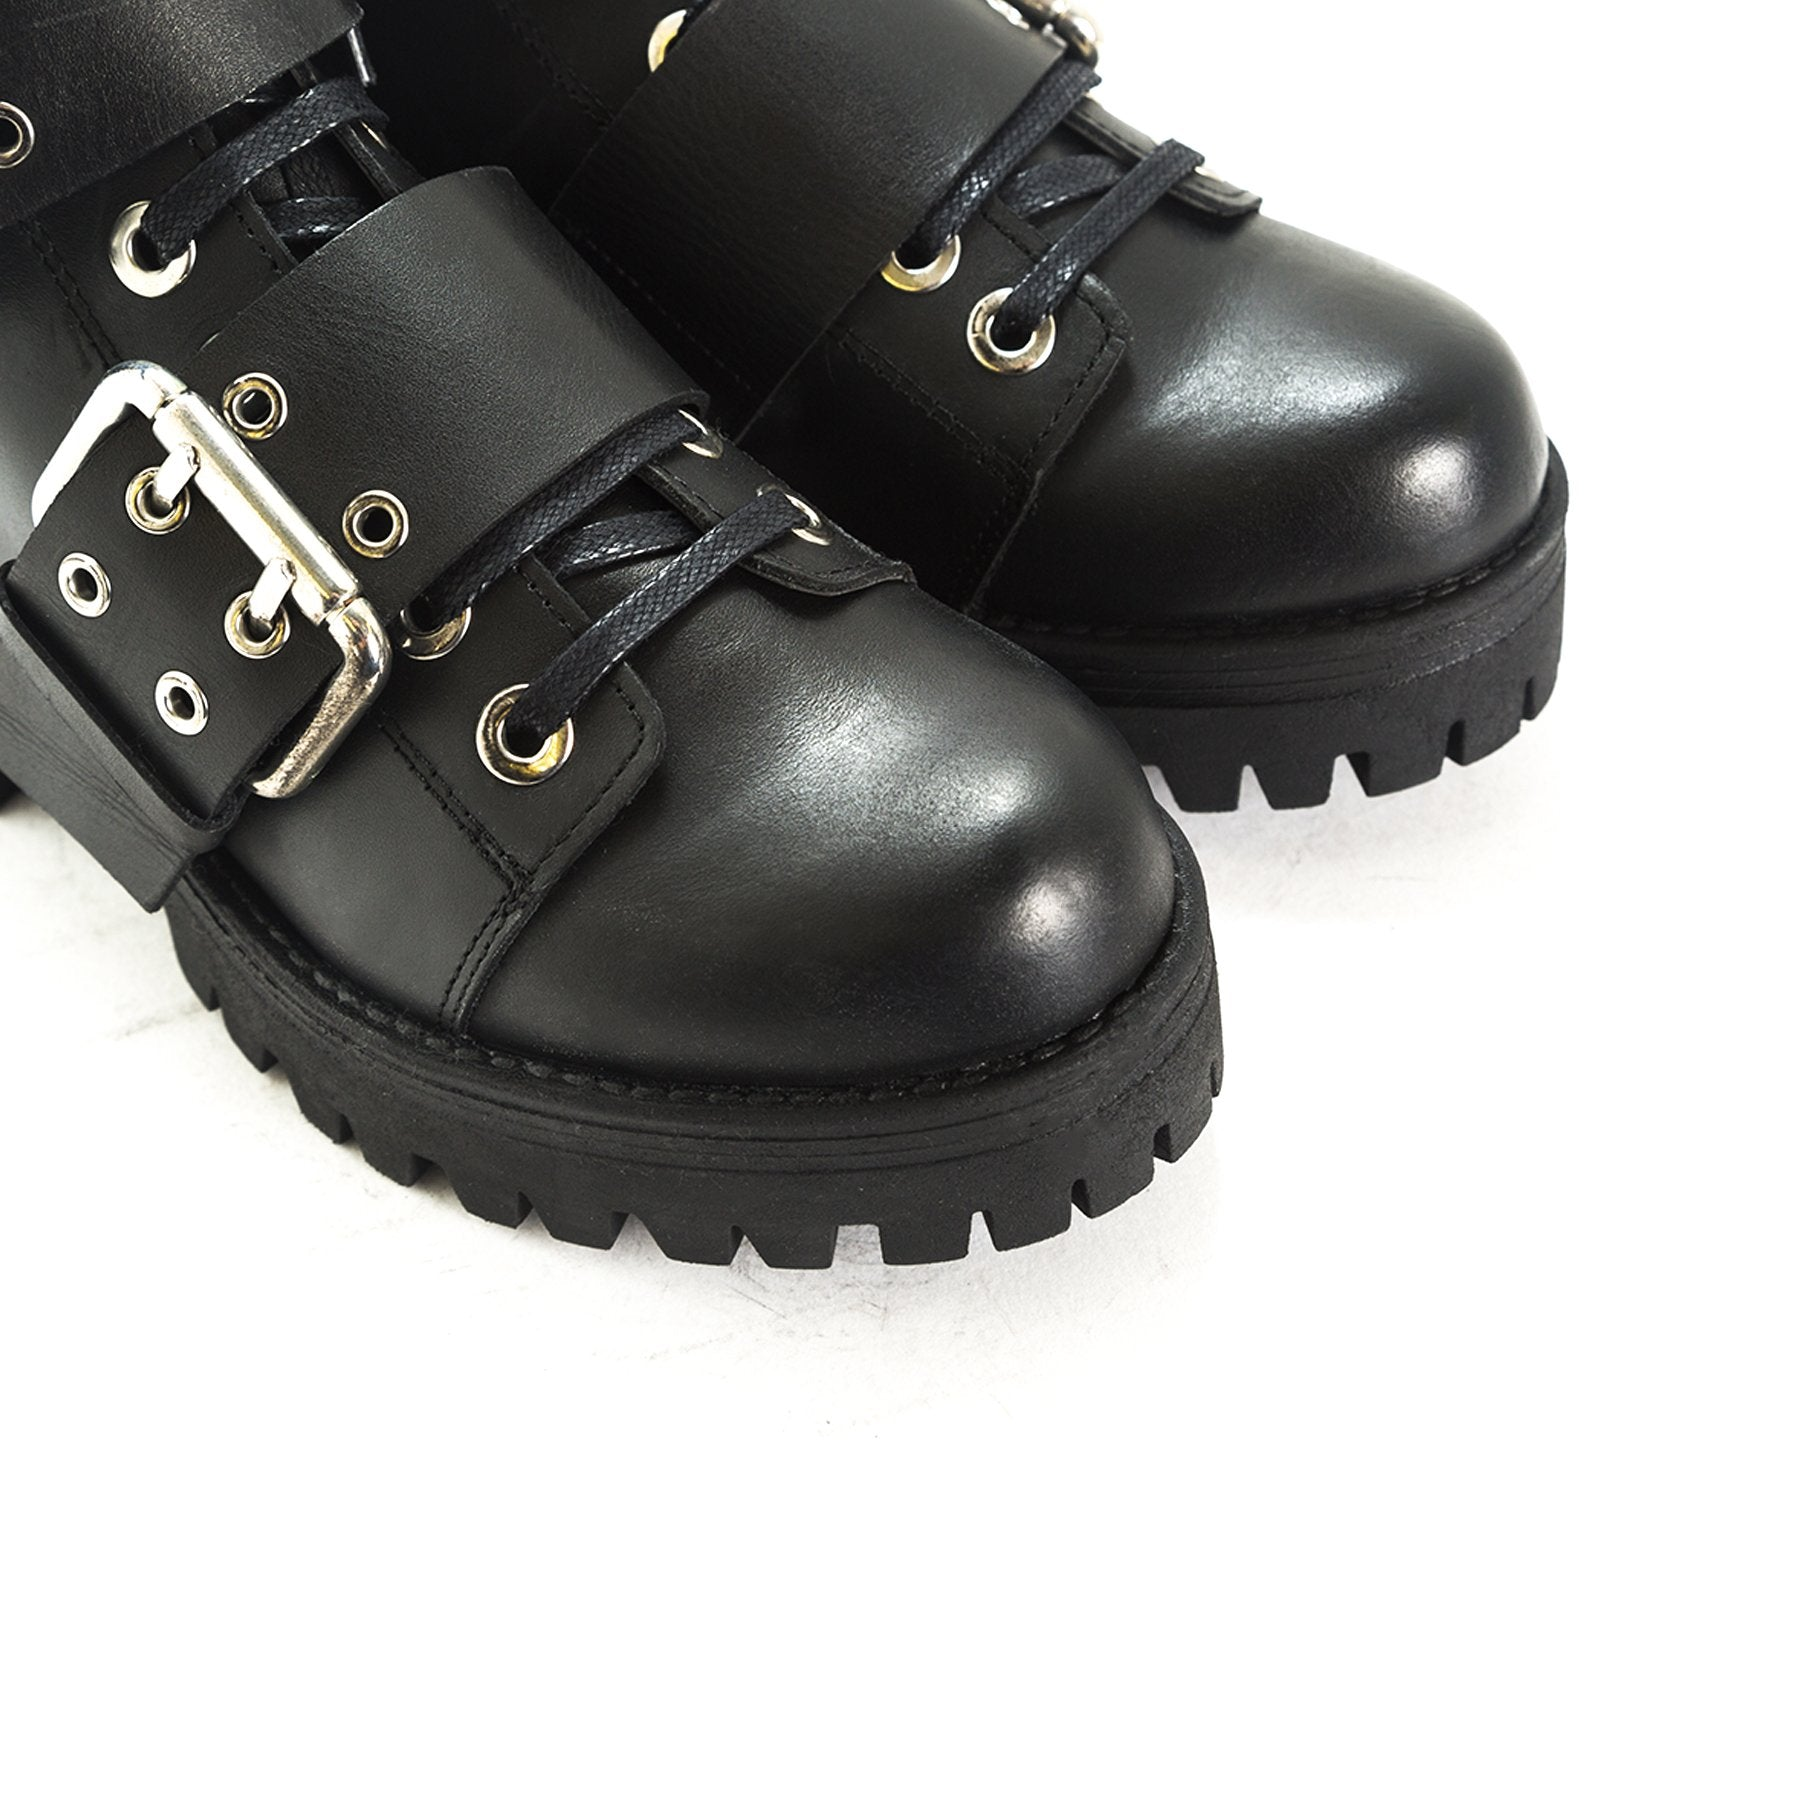 Pieler Black Leather